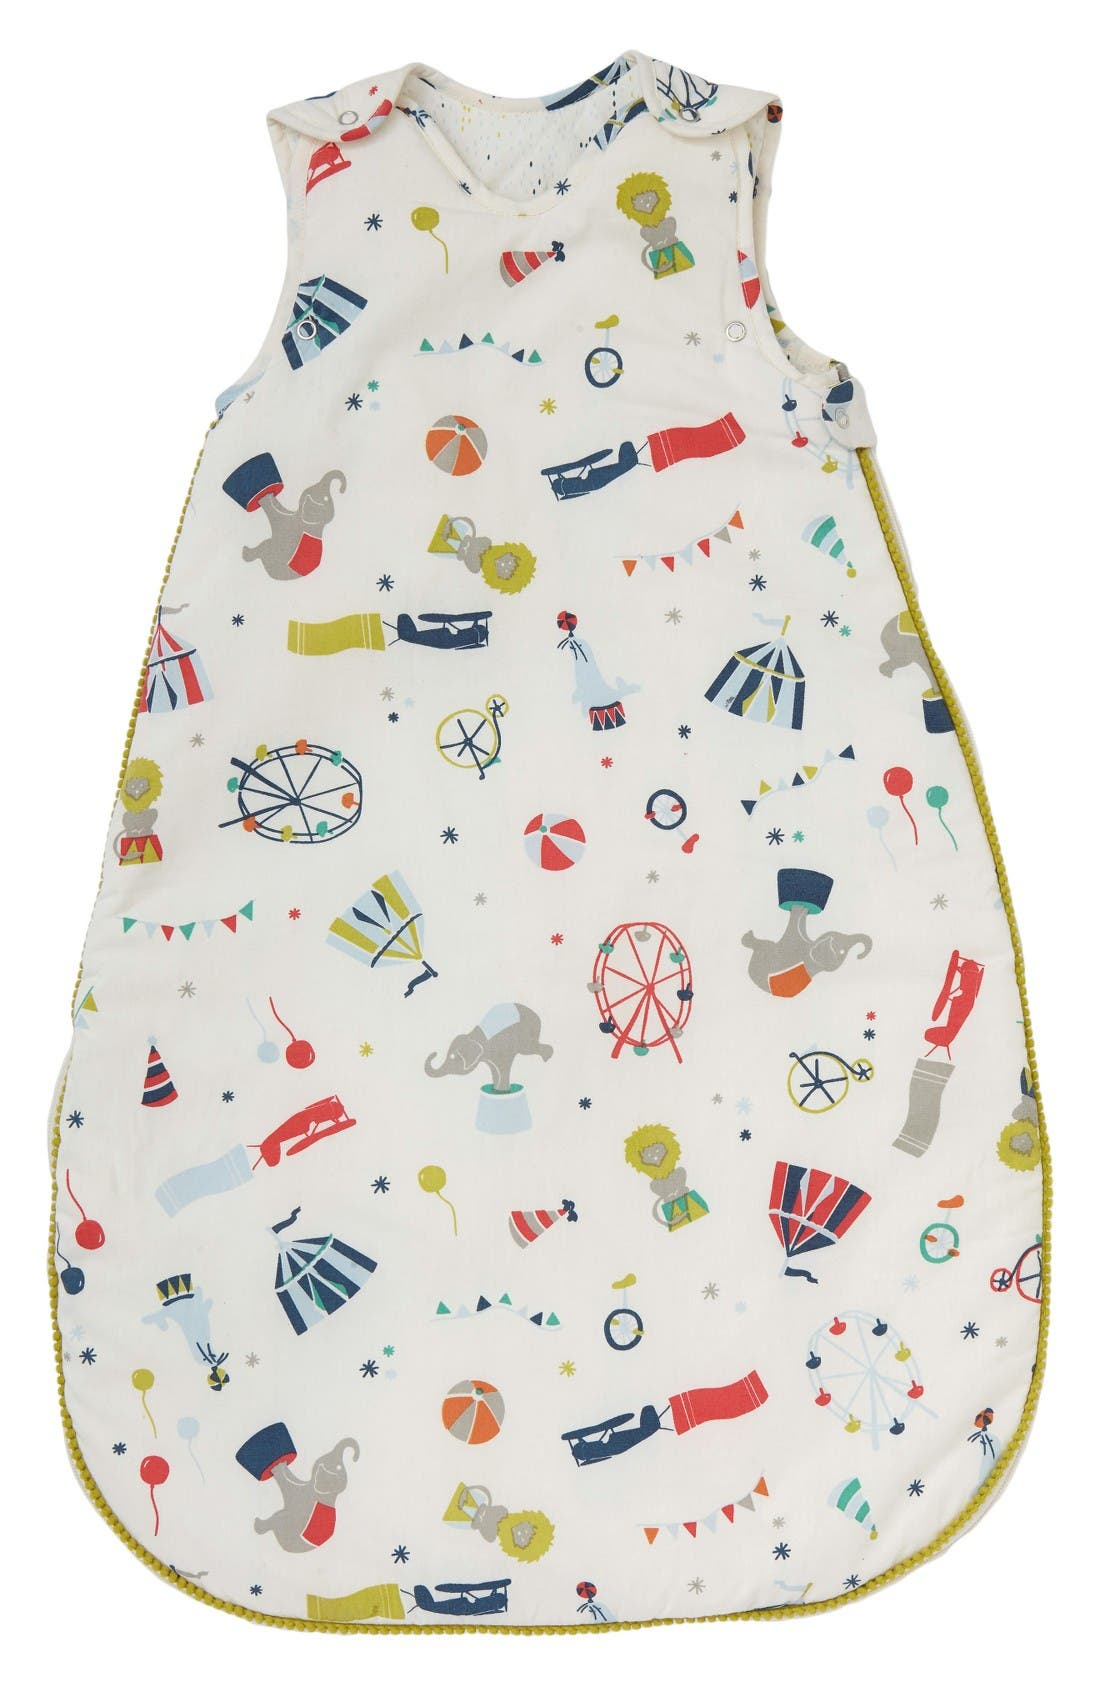 Main Image - Petit Pehr Big Top Print Cotton Wearable Blanket (Baby)